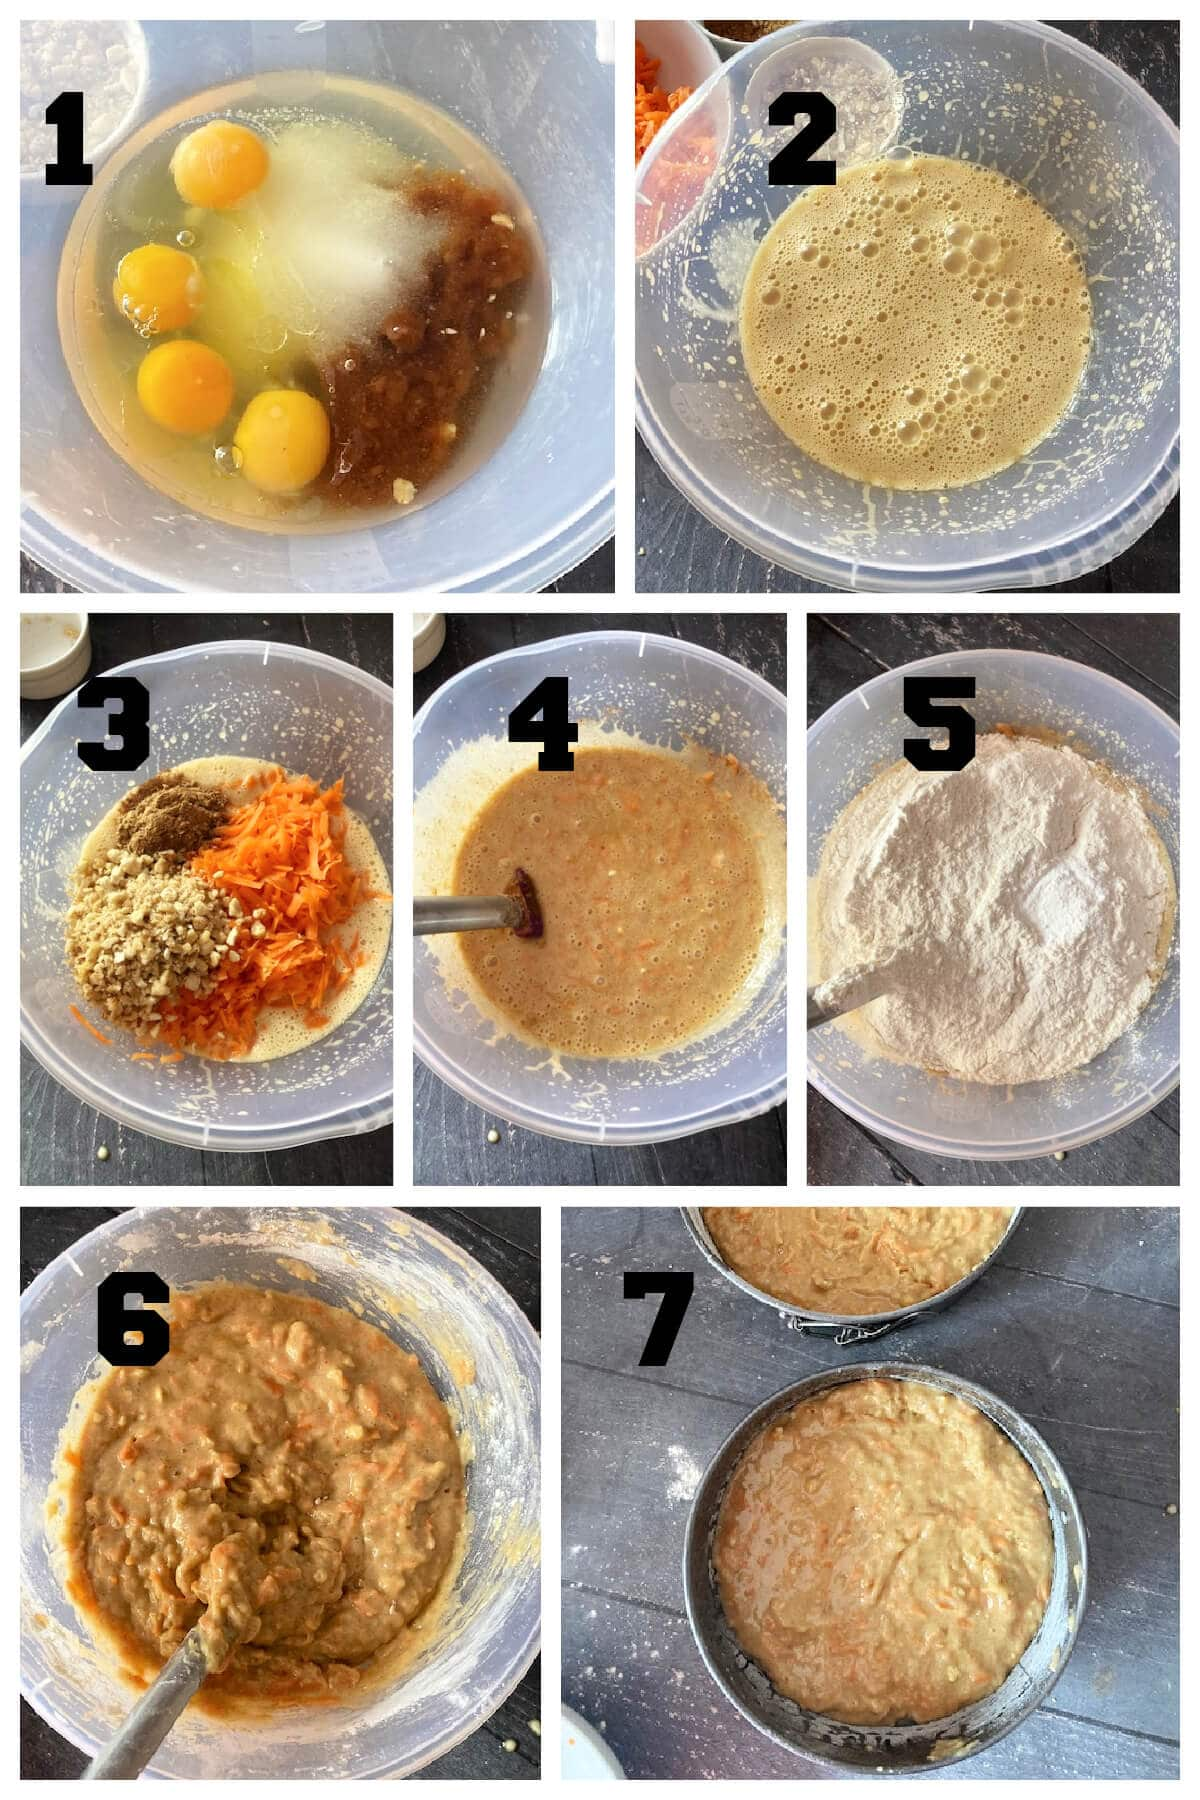 Collage of 7 photos to show how to make carrot cake